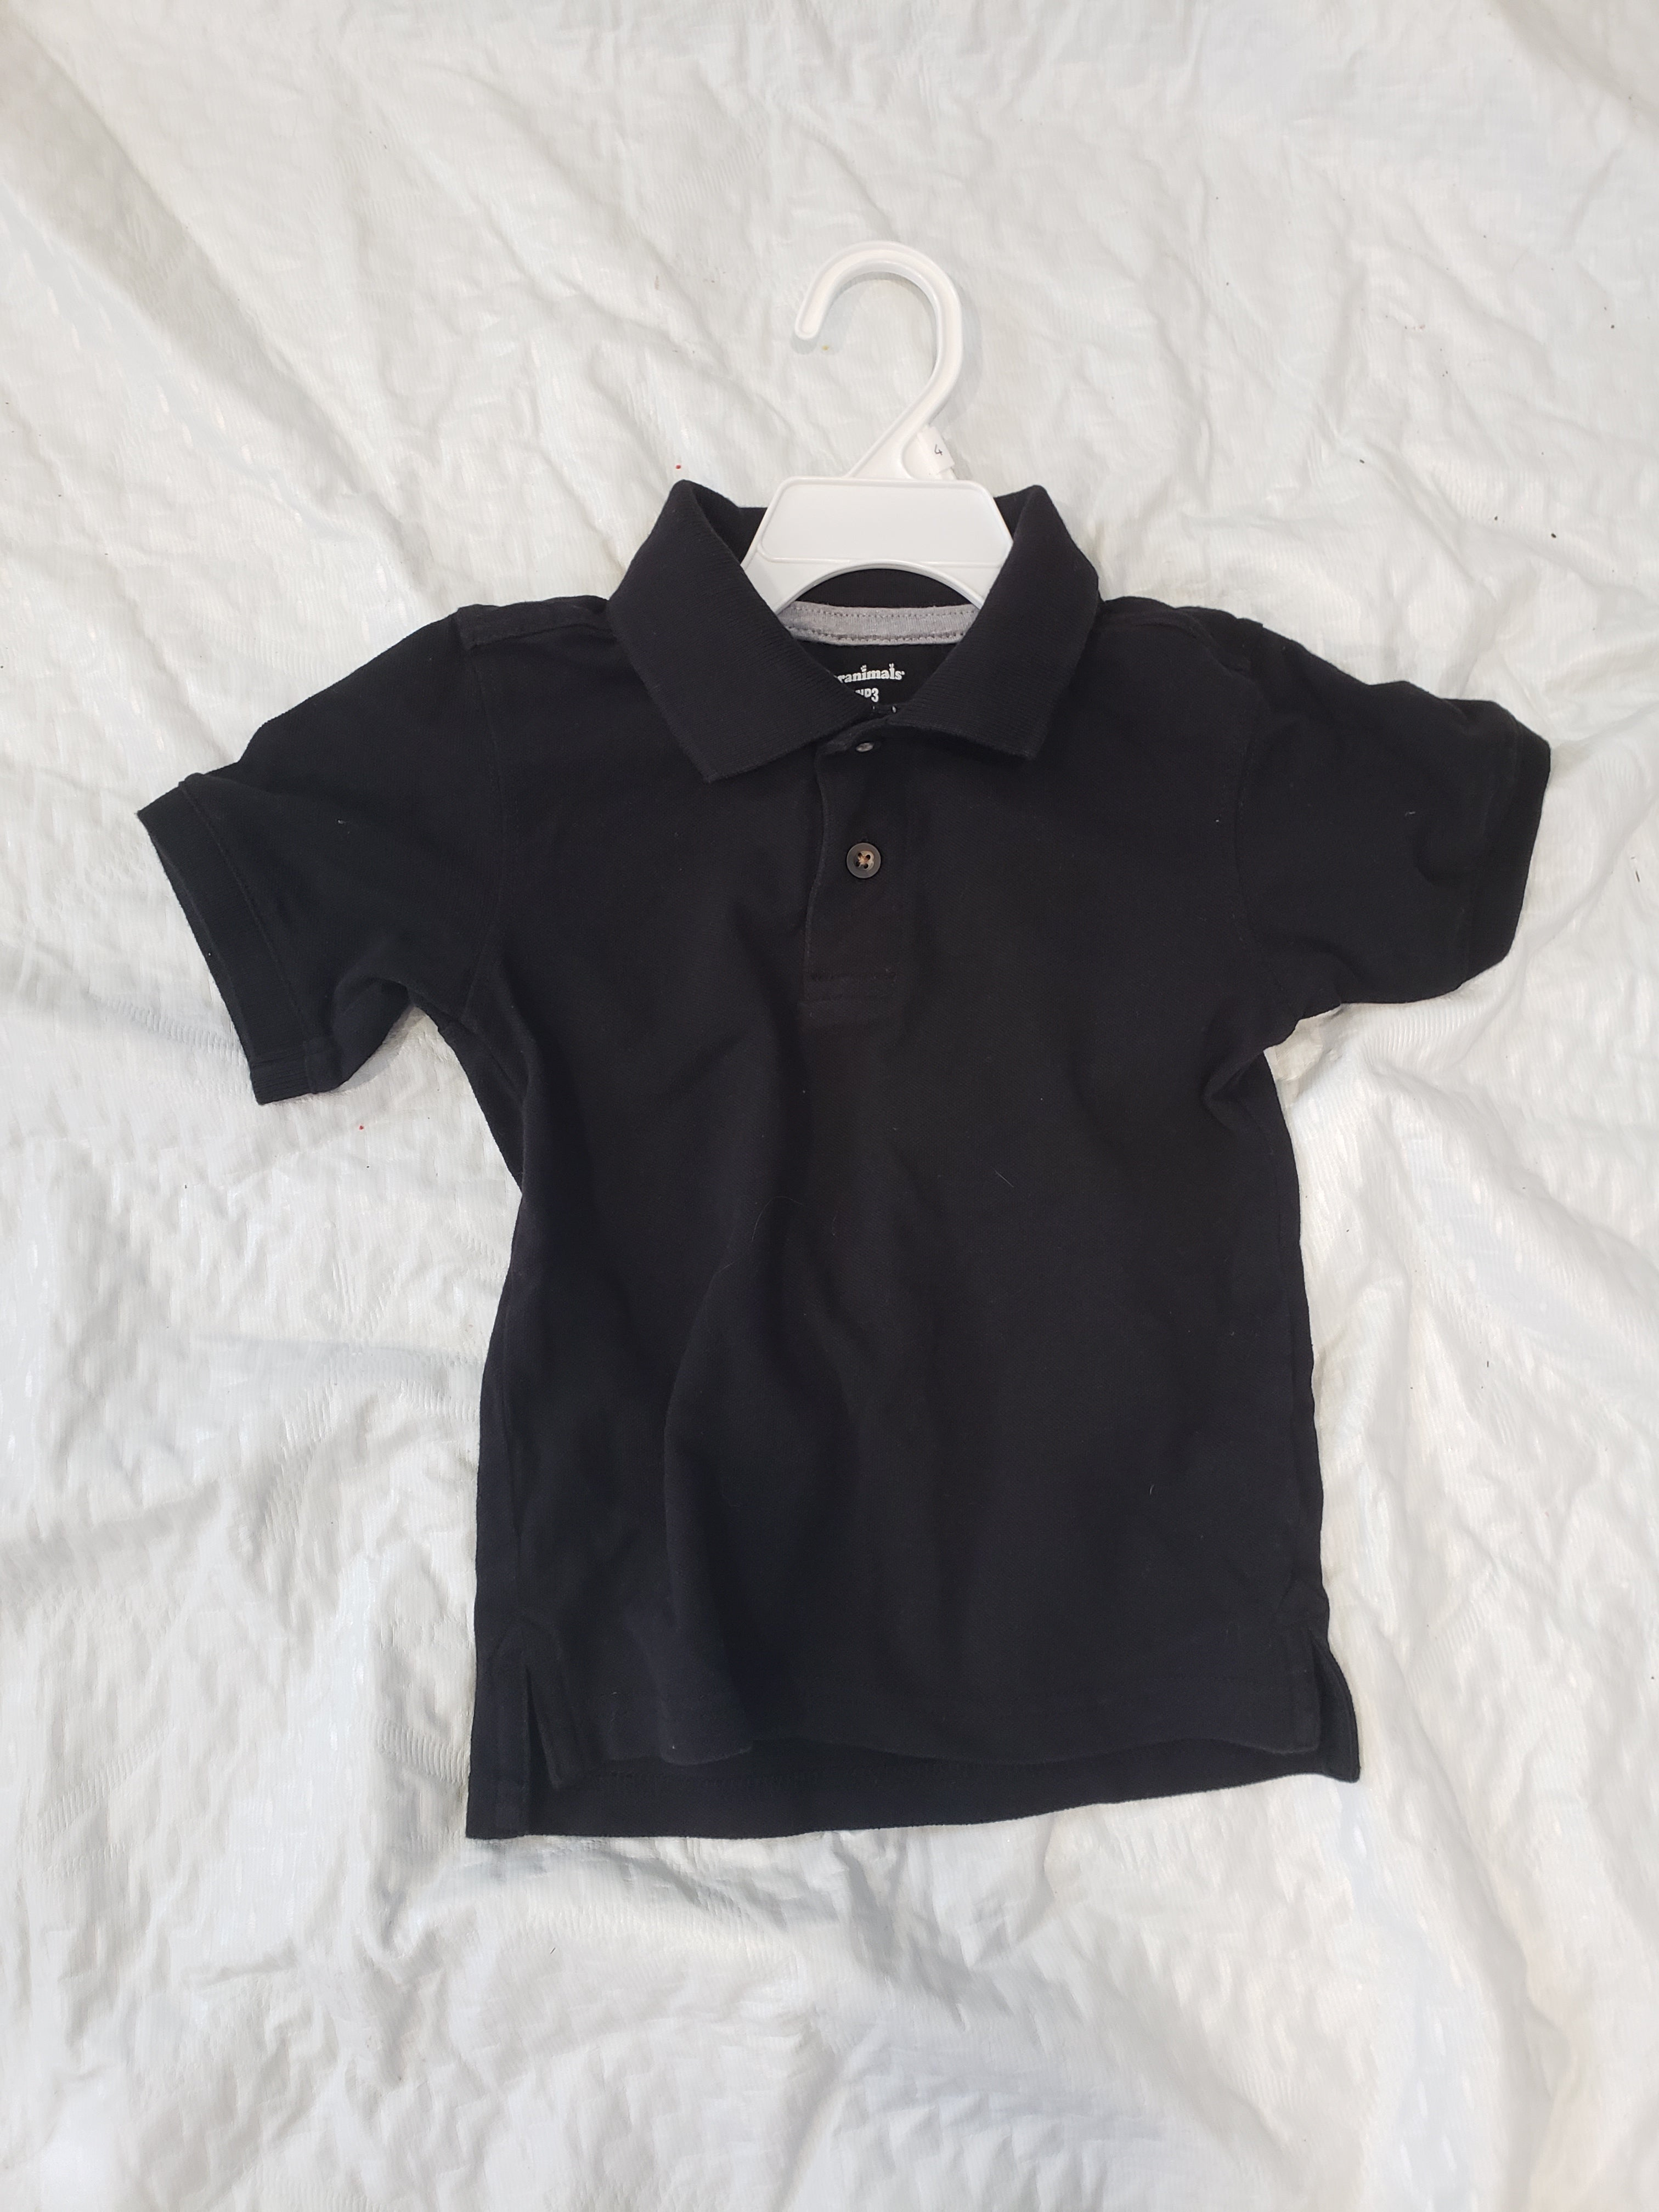 Garanimals boys 3T black polo shirt